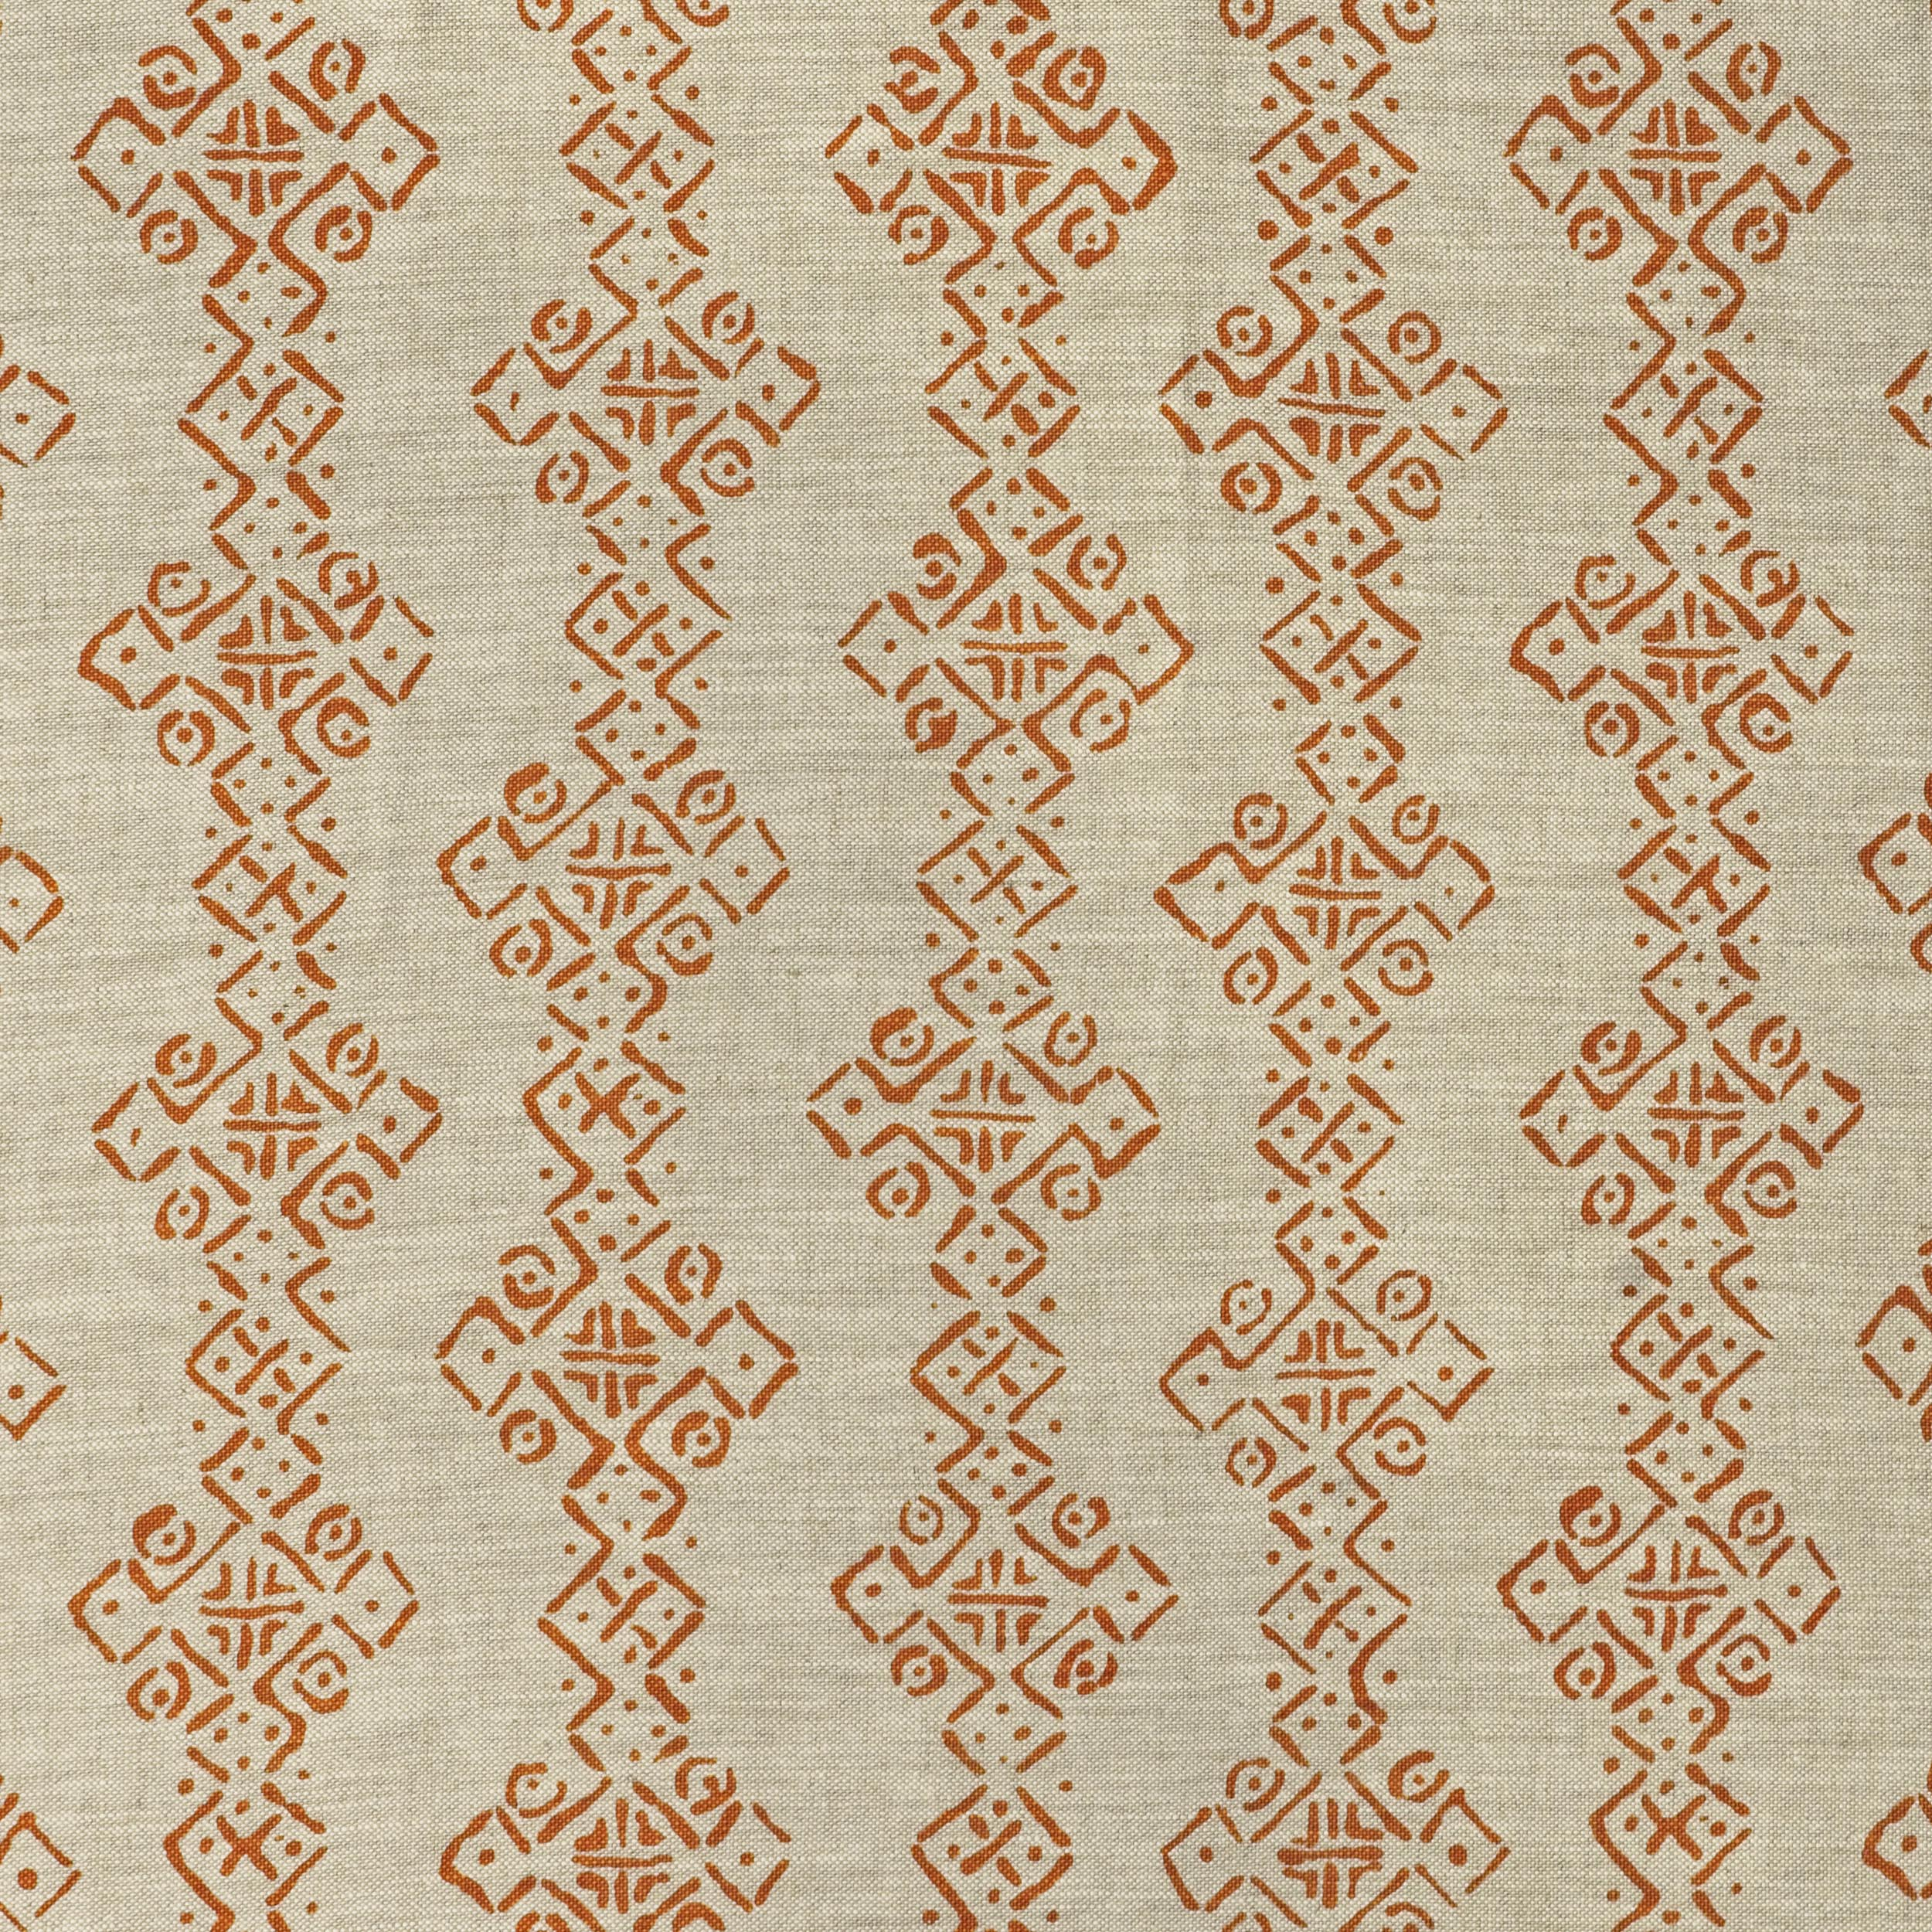 <p><strong>MALI</strong>tangerine 6807-03<a href=/the-brooke-collection/tangerine-6807-03>More →</a></p>